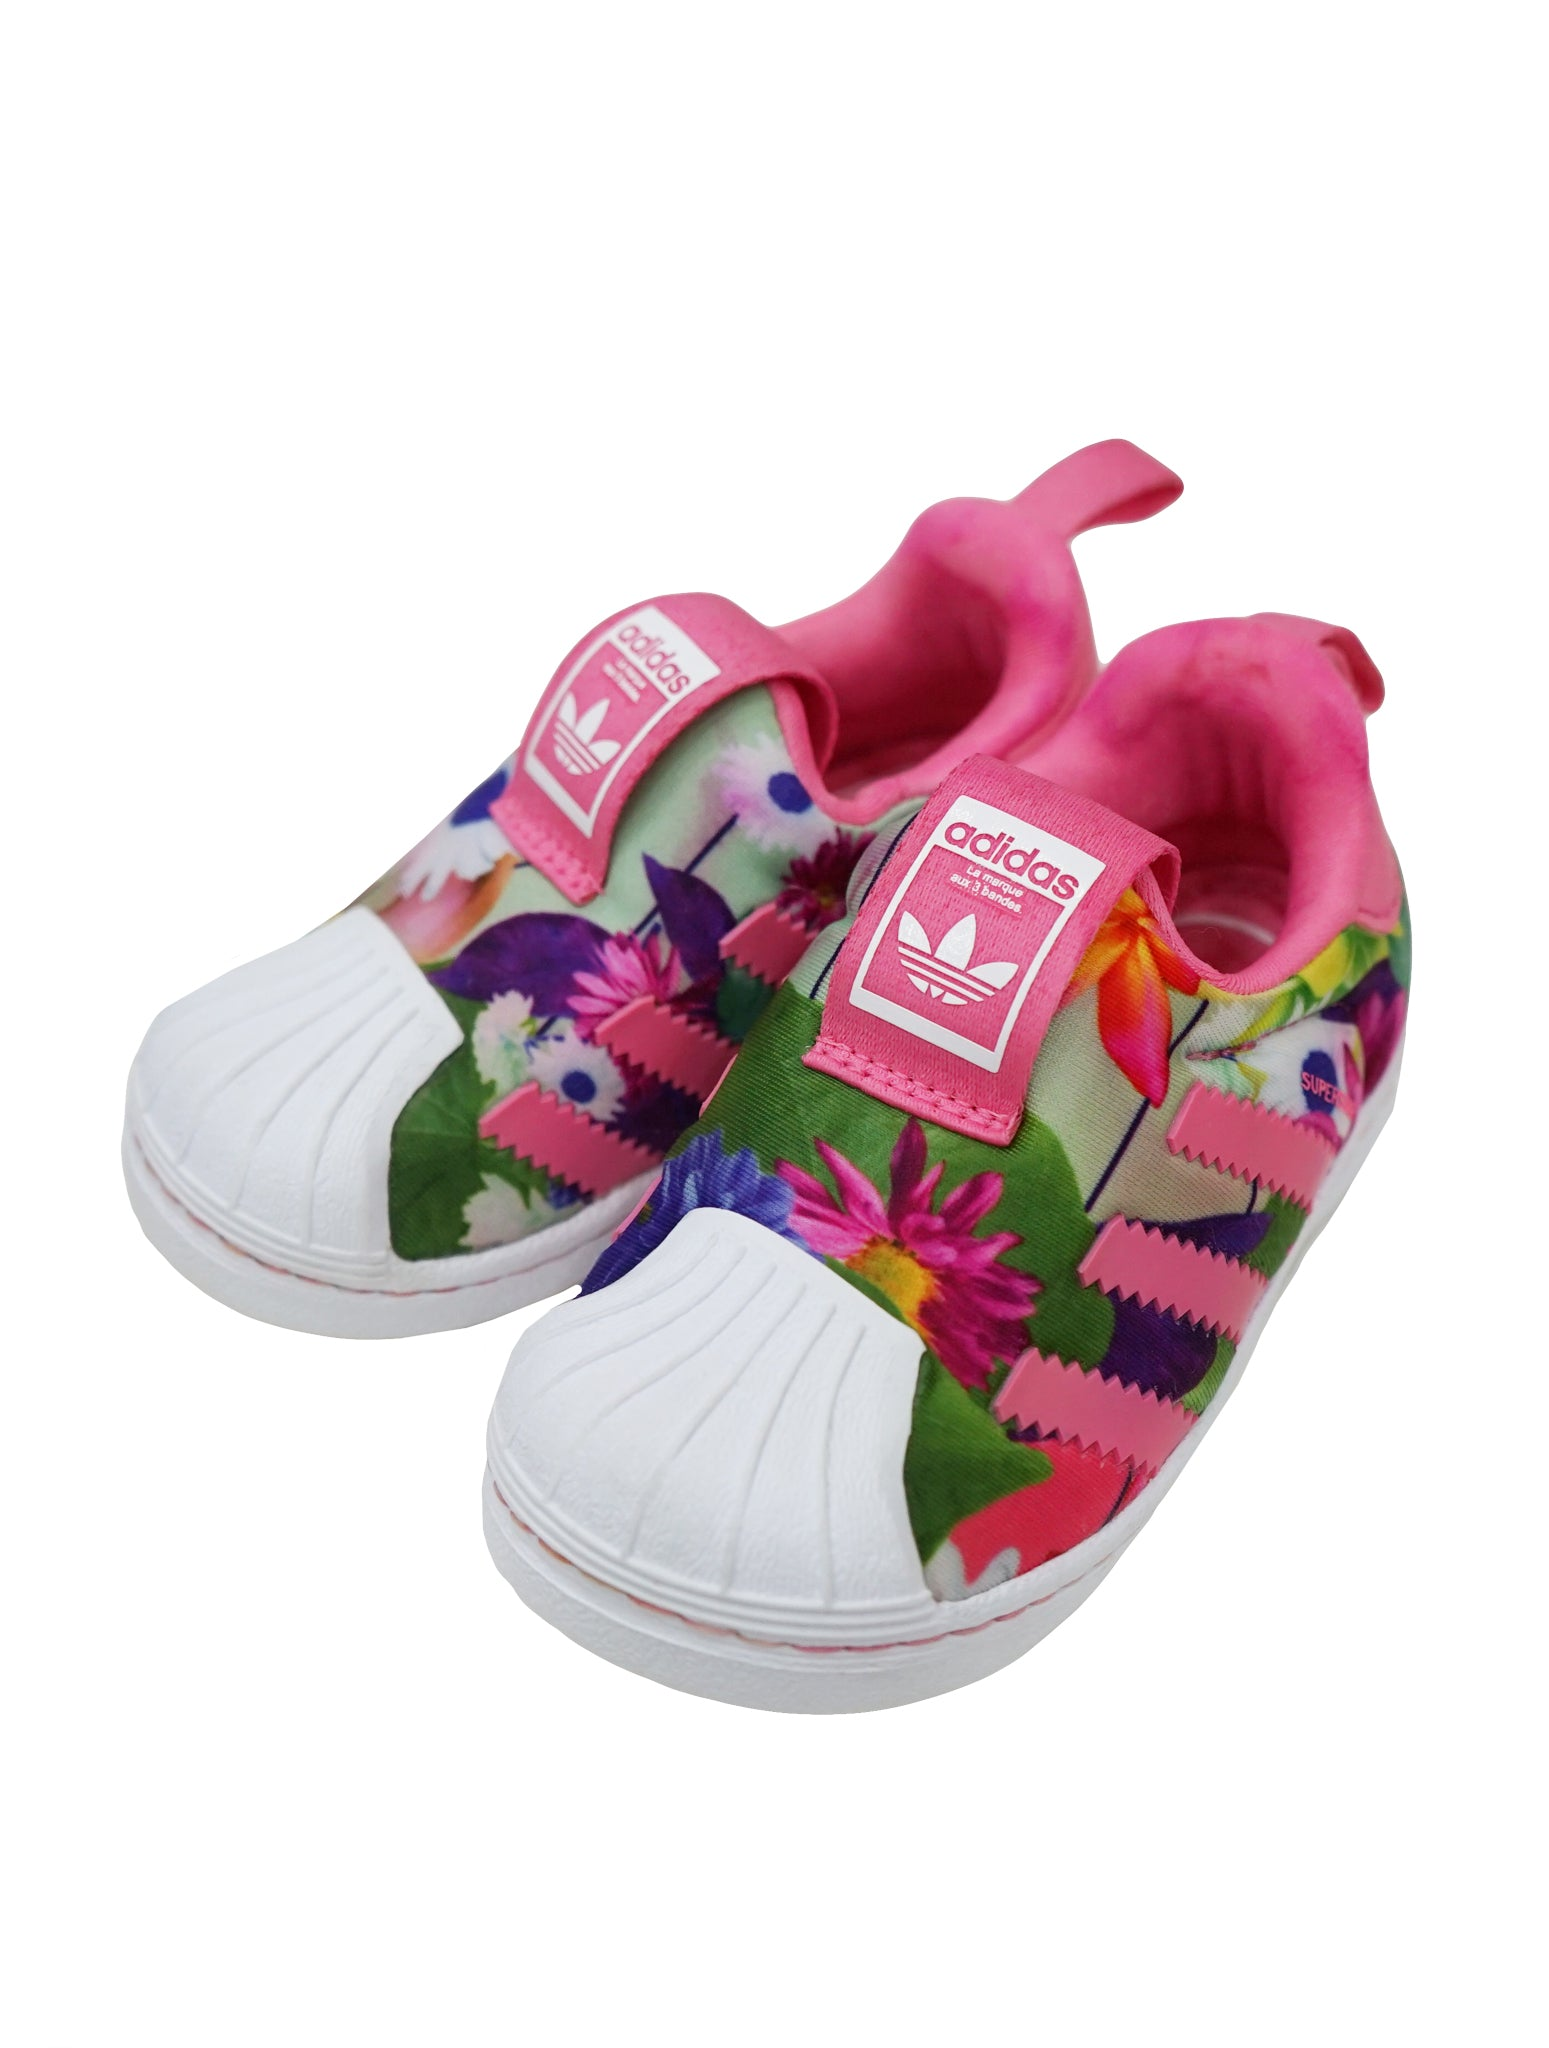 FLORAL PRINT FITFOAM ORTHOLITE SHOES